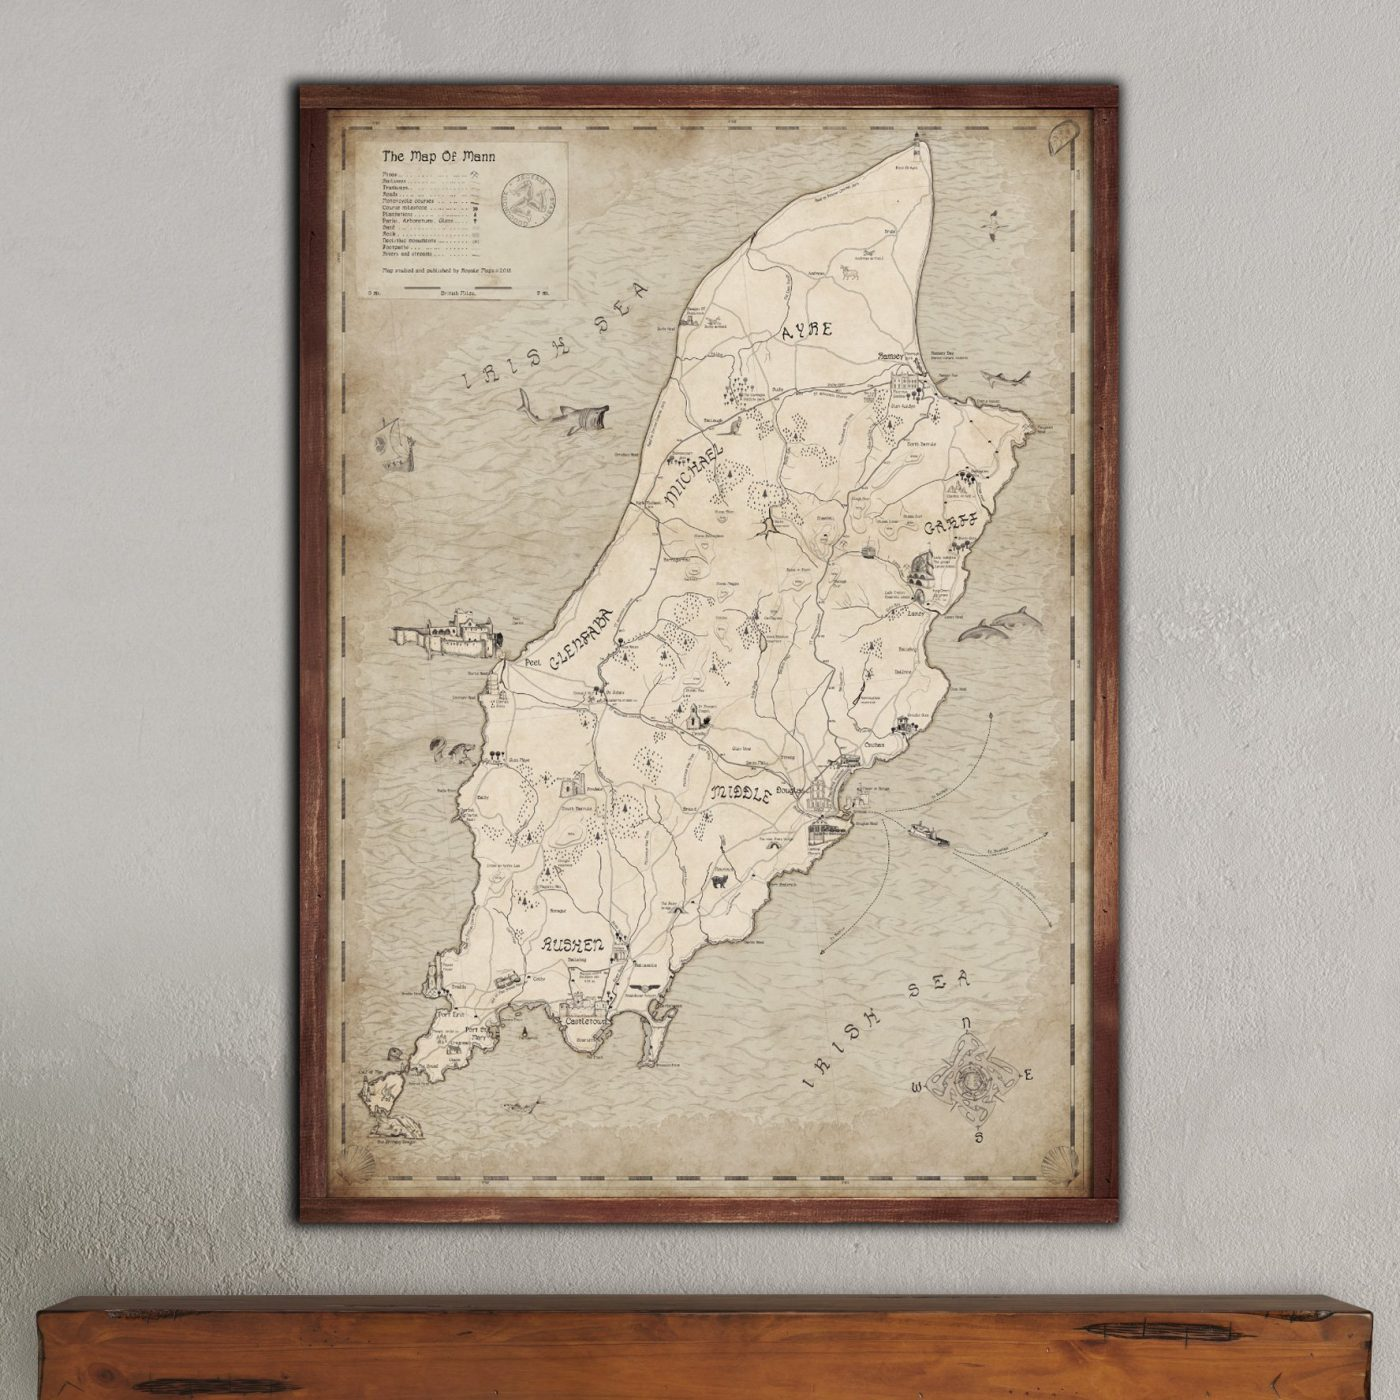 Decorative map of the isle of man